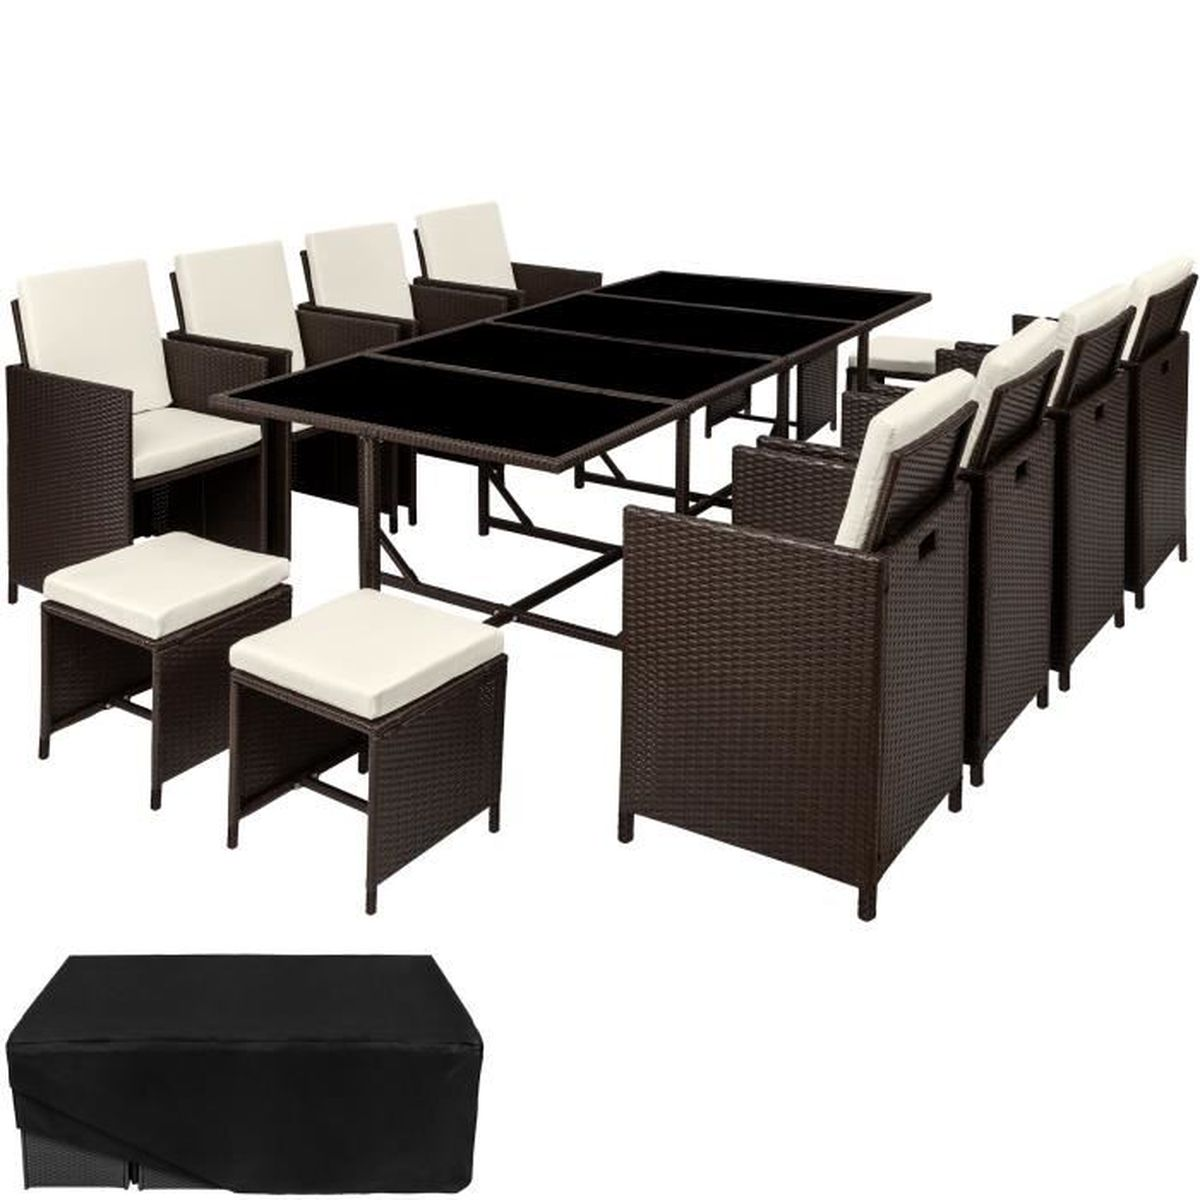 salon de jardin palma ensemble avec 8 chaises 4 tabourets. Black Bedroom Furniture Sets. Home Design Ideas